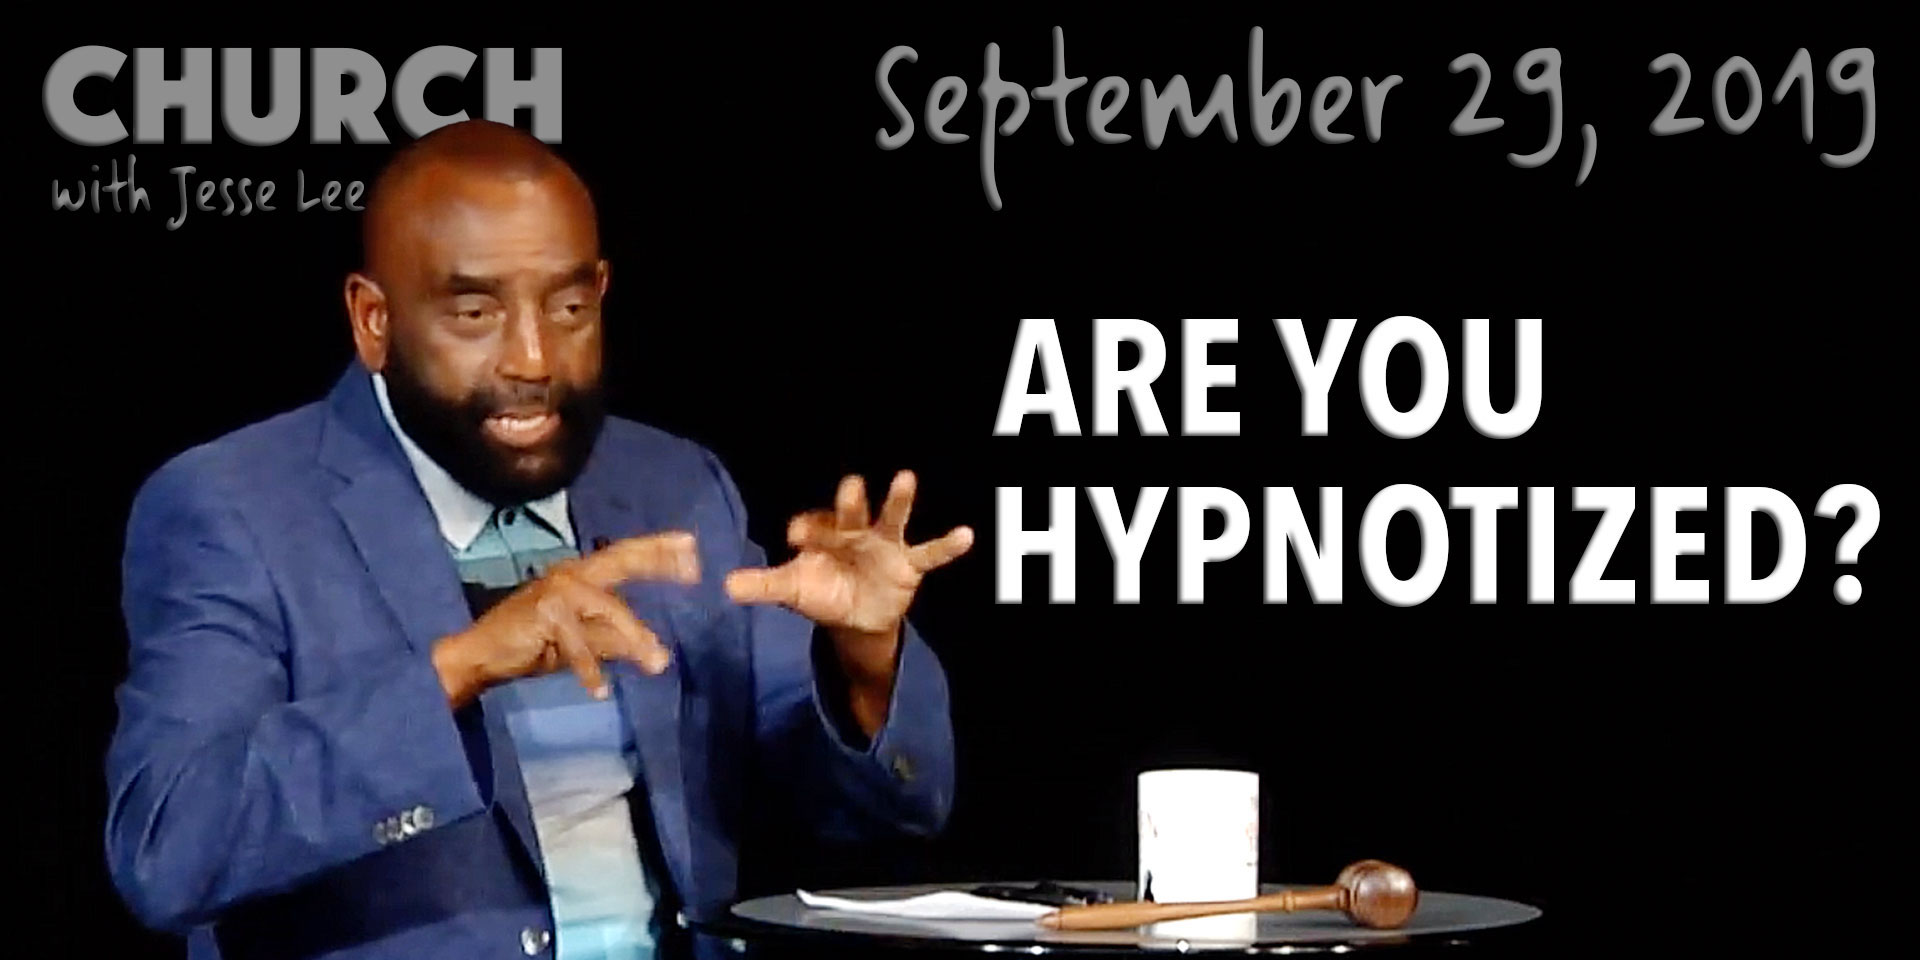 Are You Hypnotized? (Church, Sept 29, 2019)